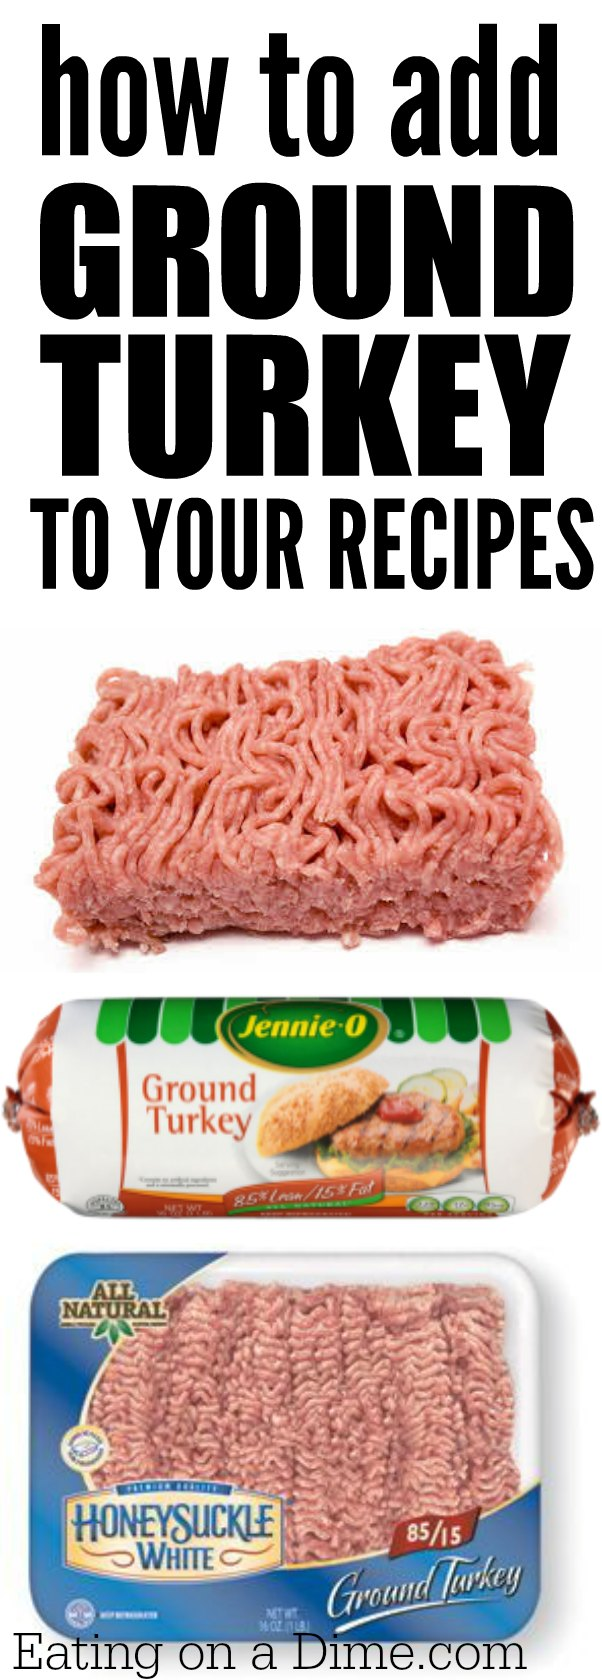 how to add ground turkey to your recipes